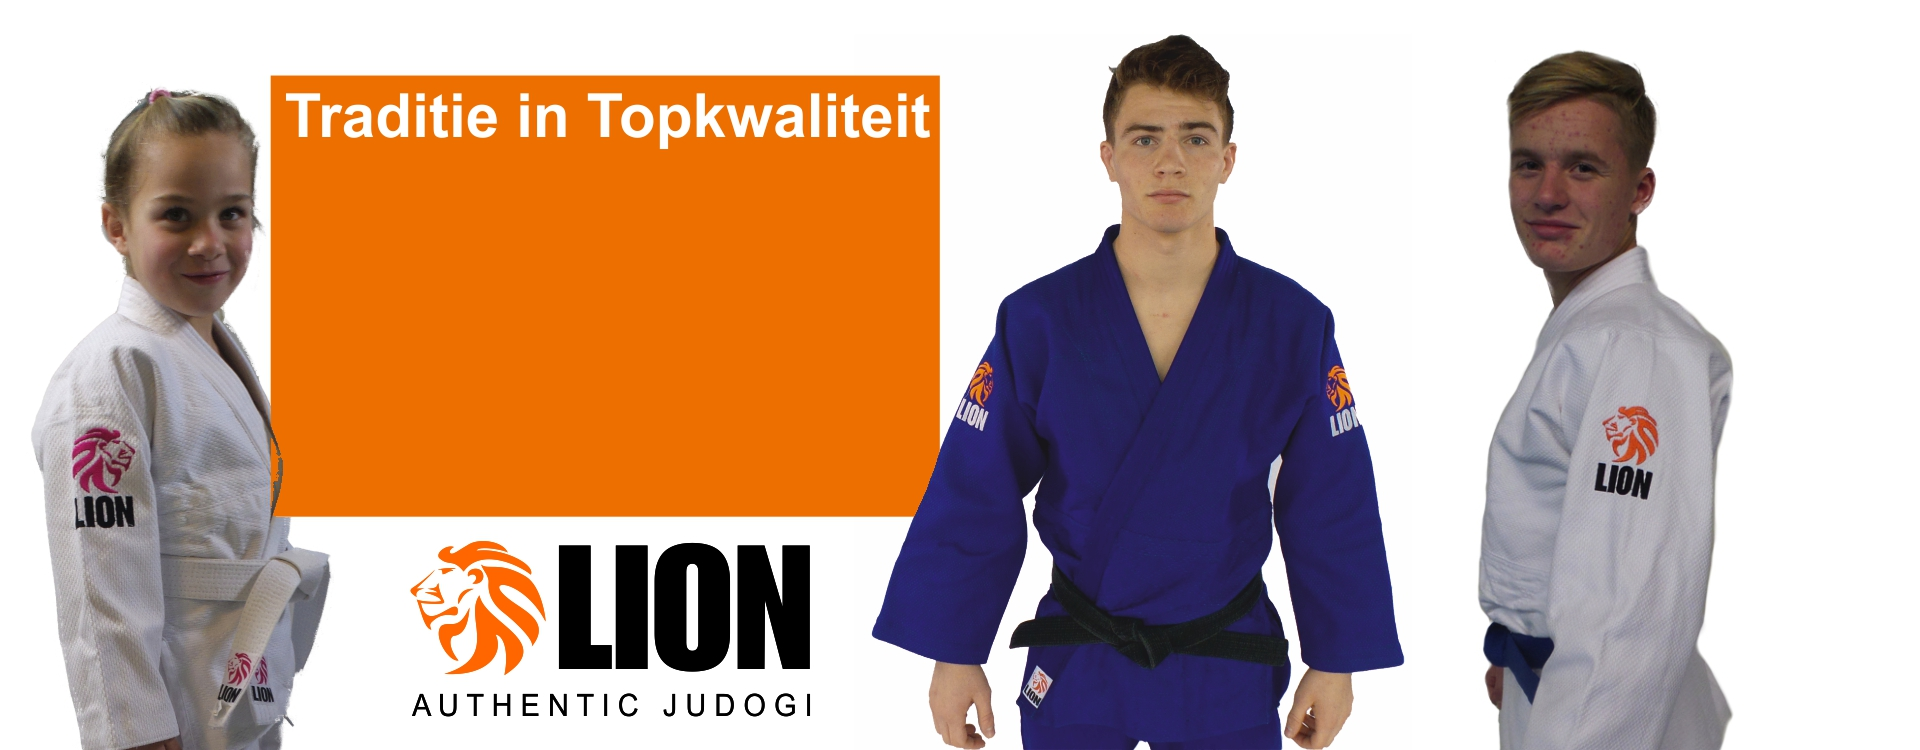 https://nieuwjudopak.be/wp-content/uploads/2018/01/shop-home-gallery-banner-Lion-judogi-2018-judogi-collectie.jpg